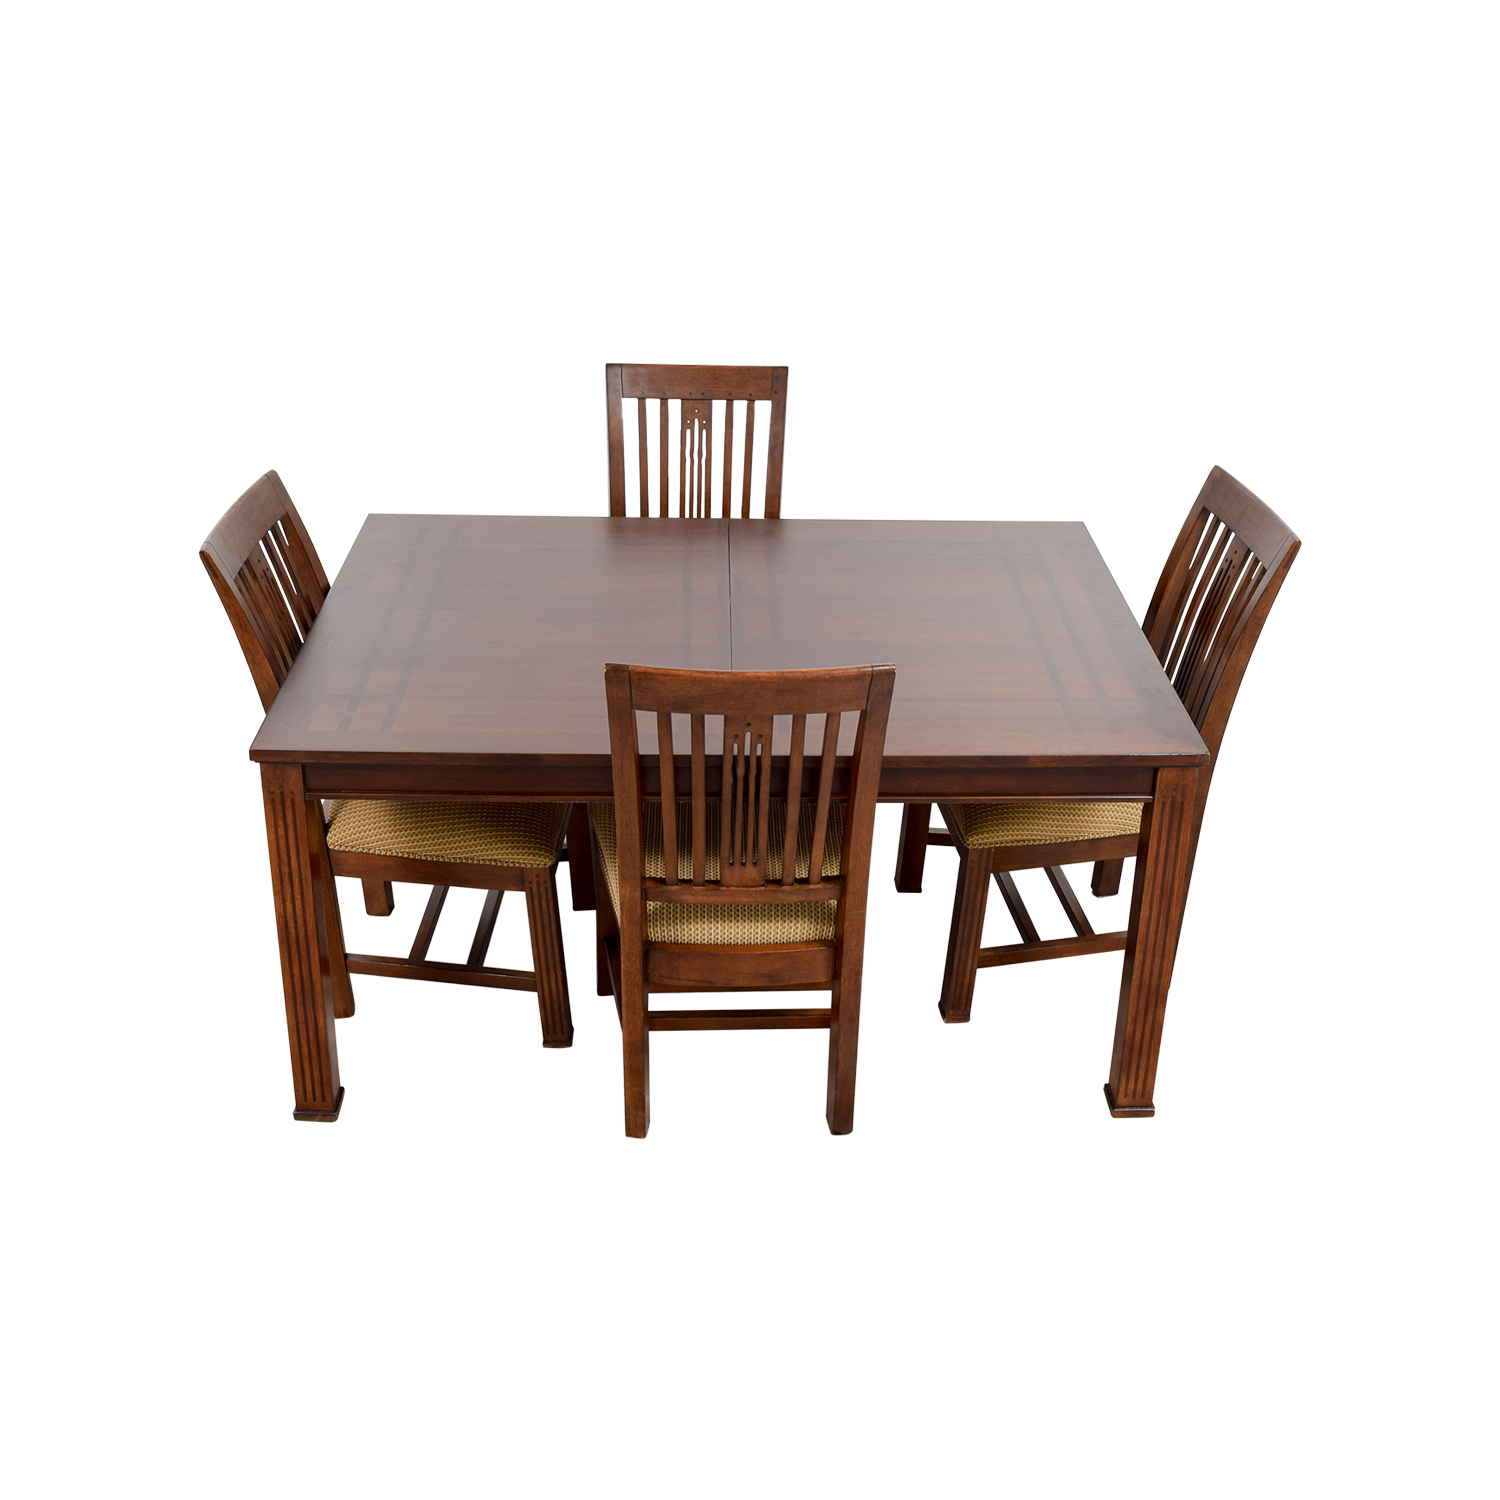 48% OFF Beech Wood and White Dining Set Tables